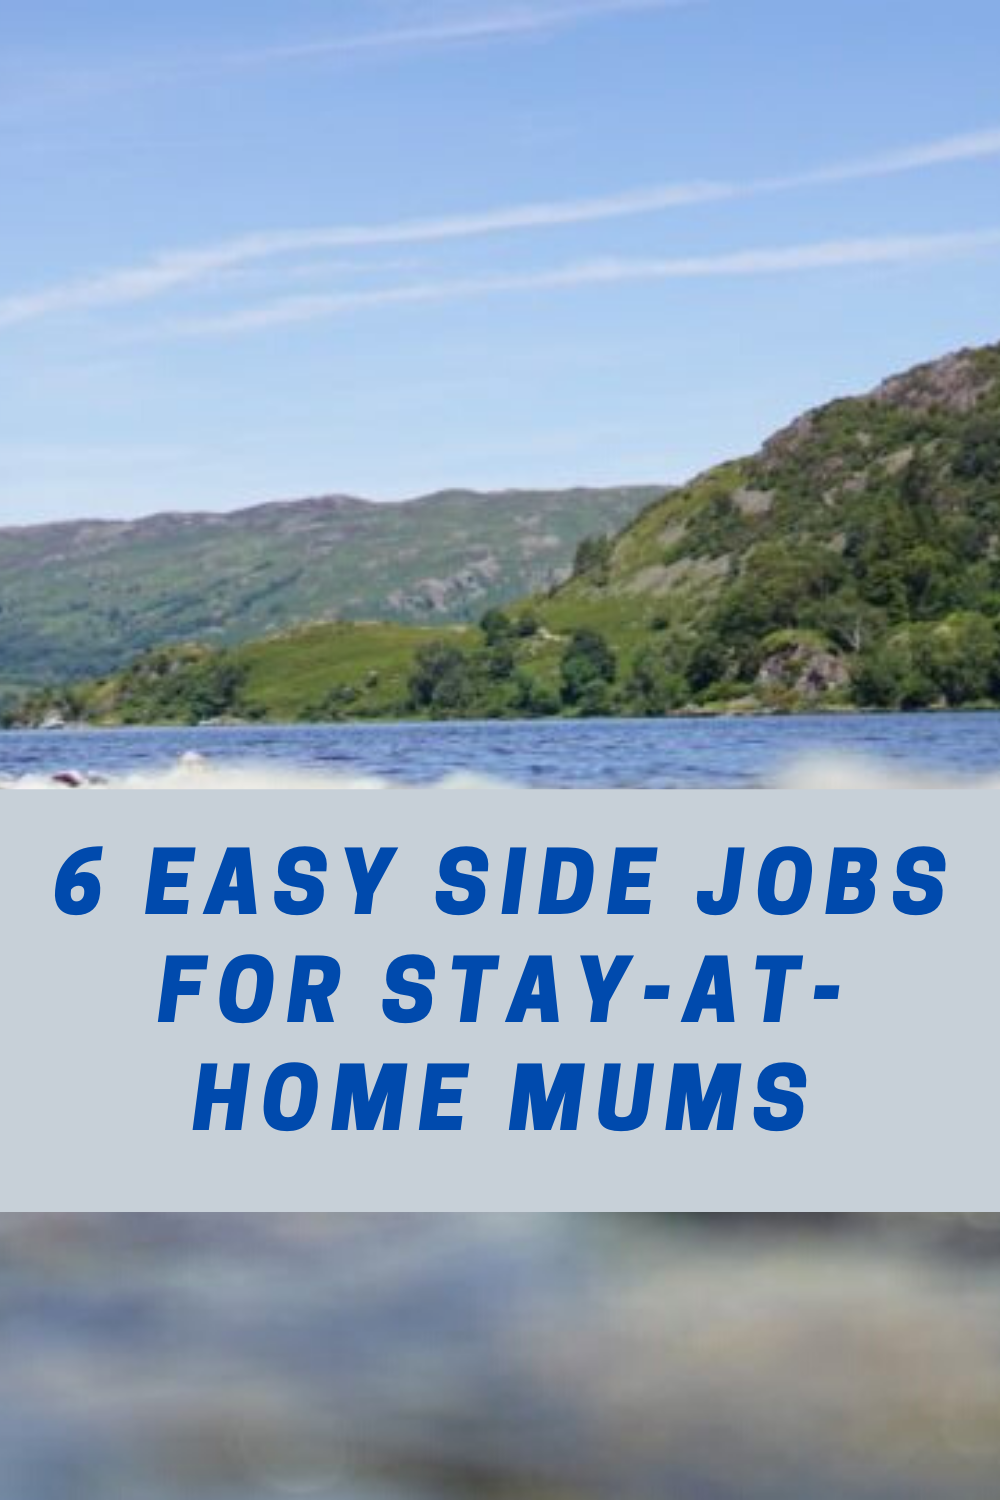 Side jobs for stay at home mums